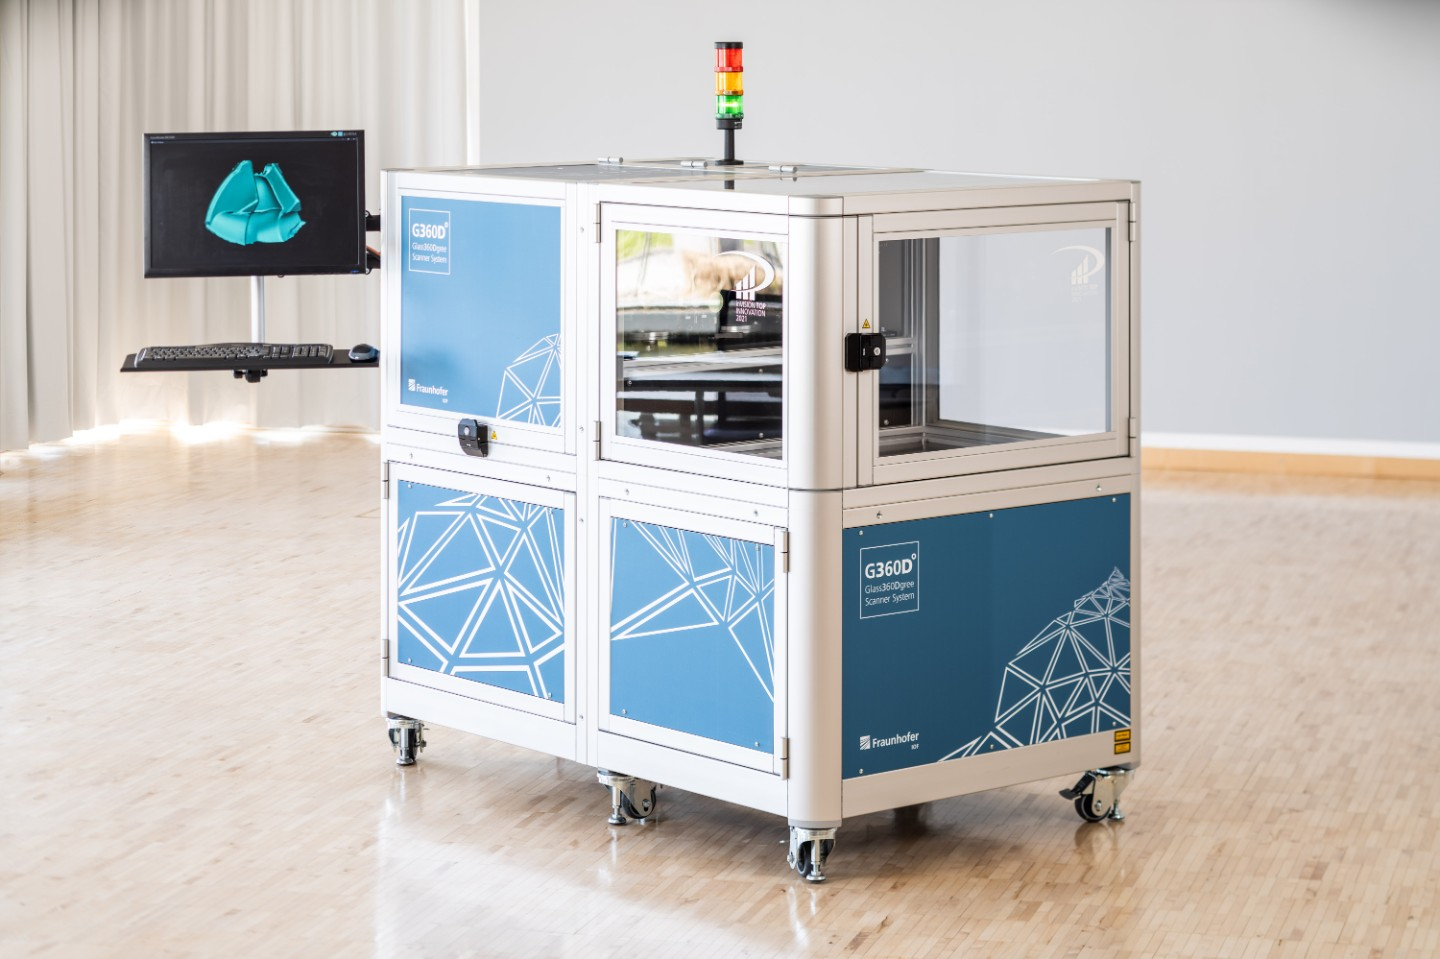 """Glass360Dgree"": First MWIR 3D system for checking Glasele in optics manufacturing"